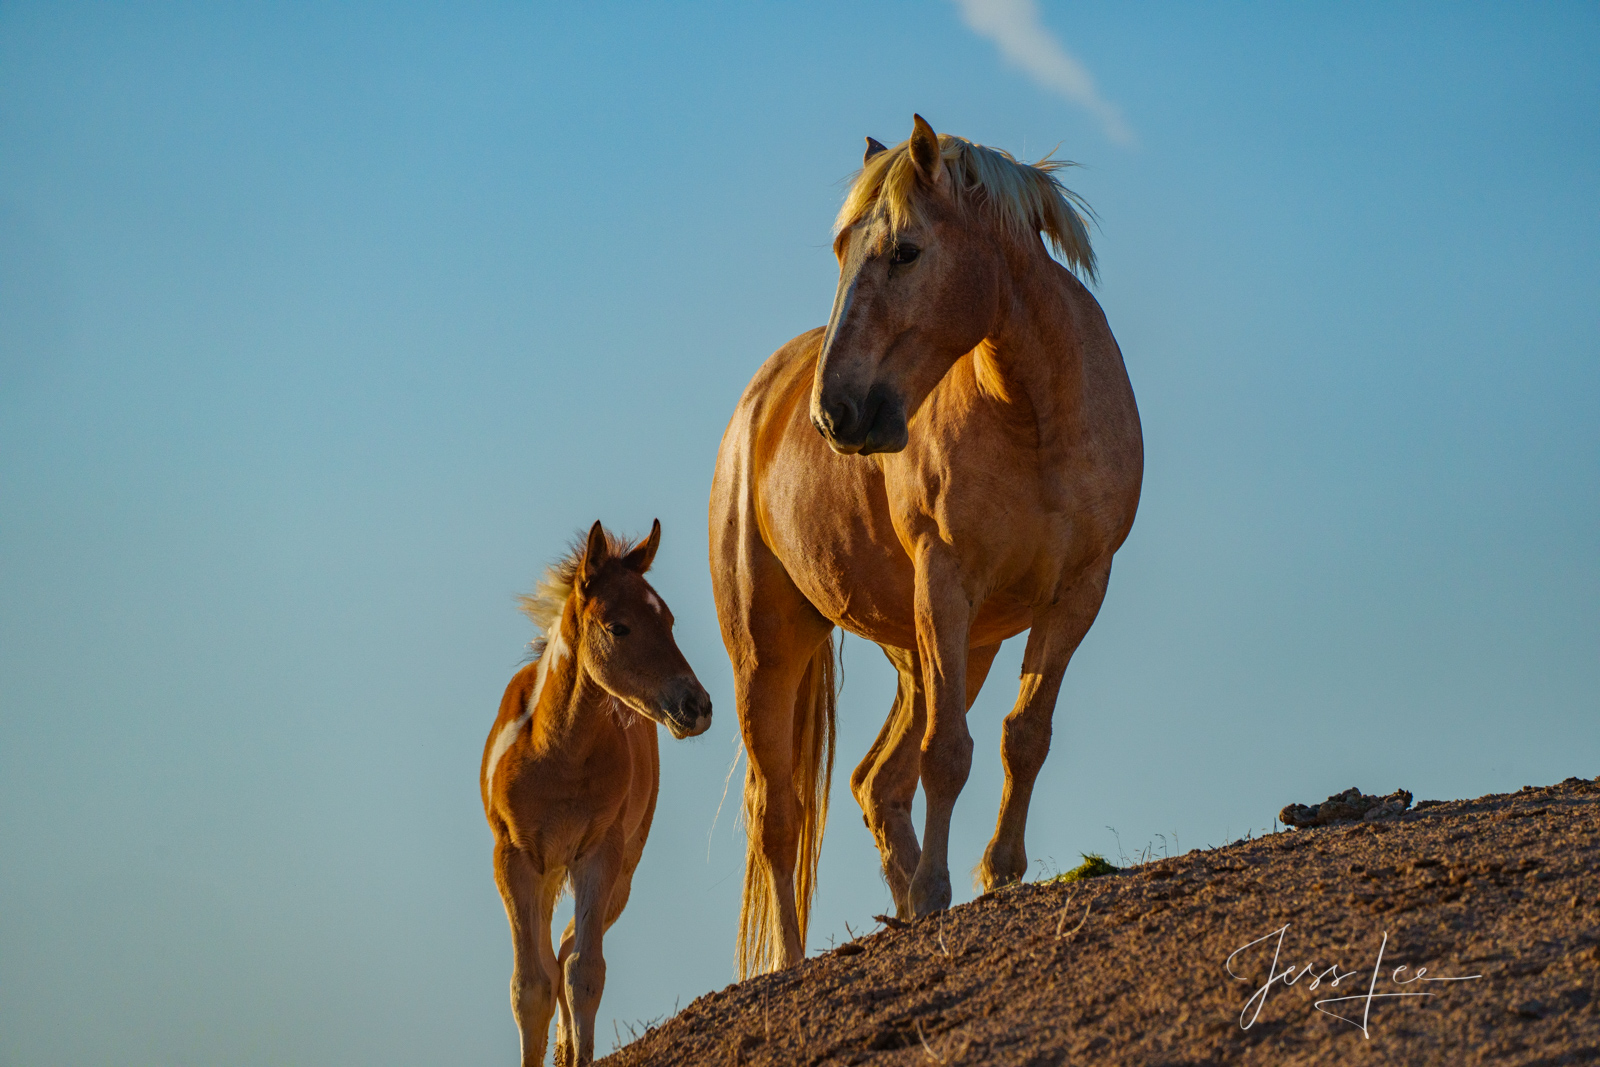 Fine Art Limited Edition Photography of Wild Mustang Horse. Wild Horses or Mustang herd. This is part of the luxurious collection...